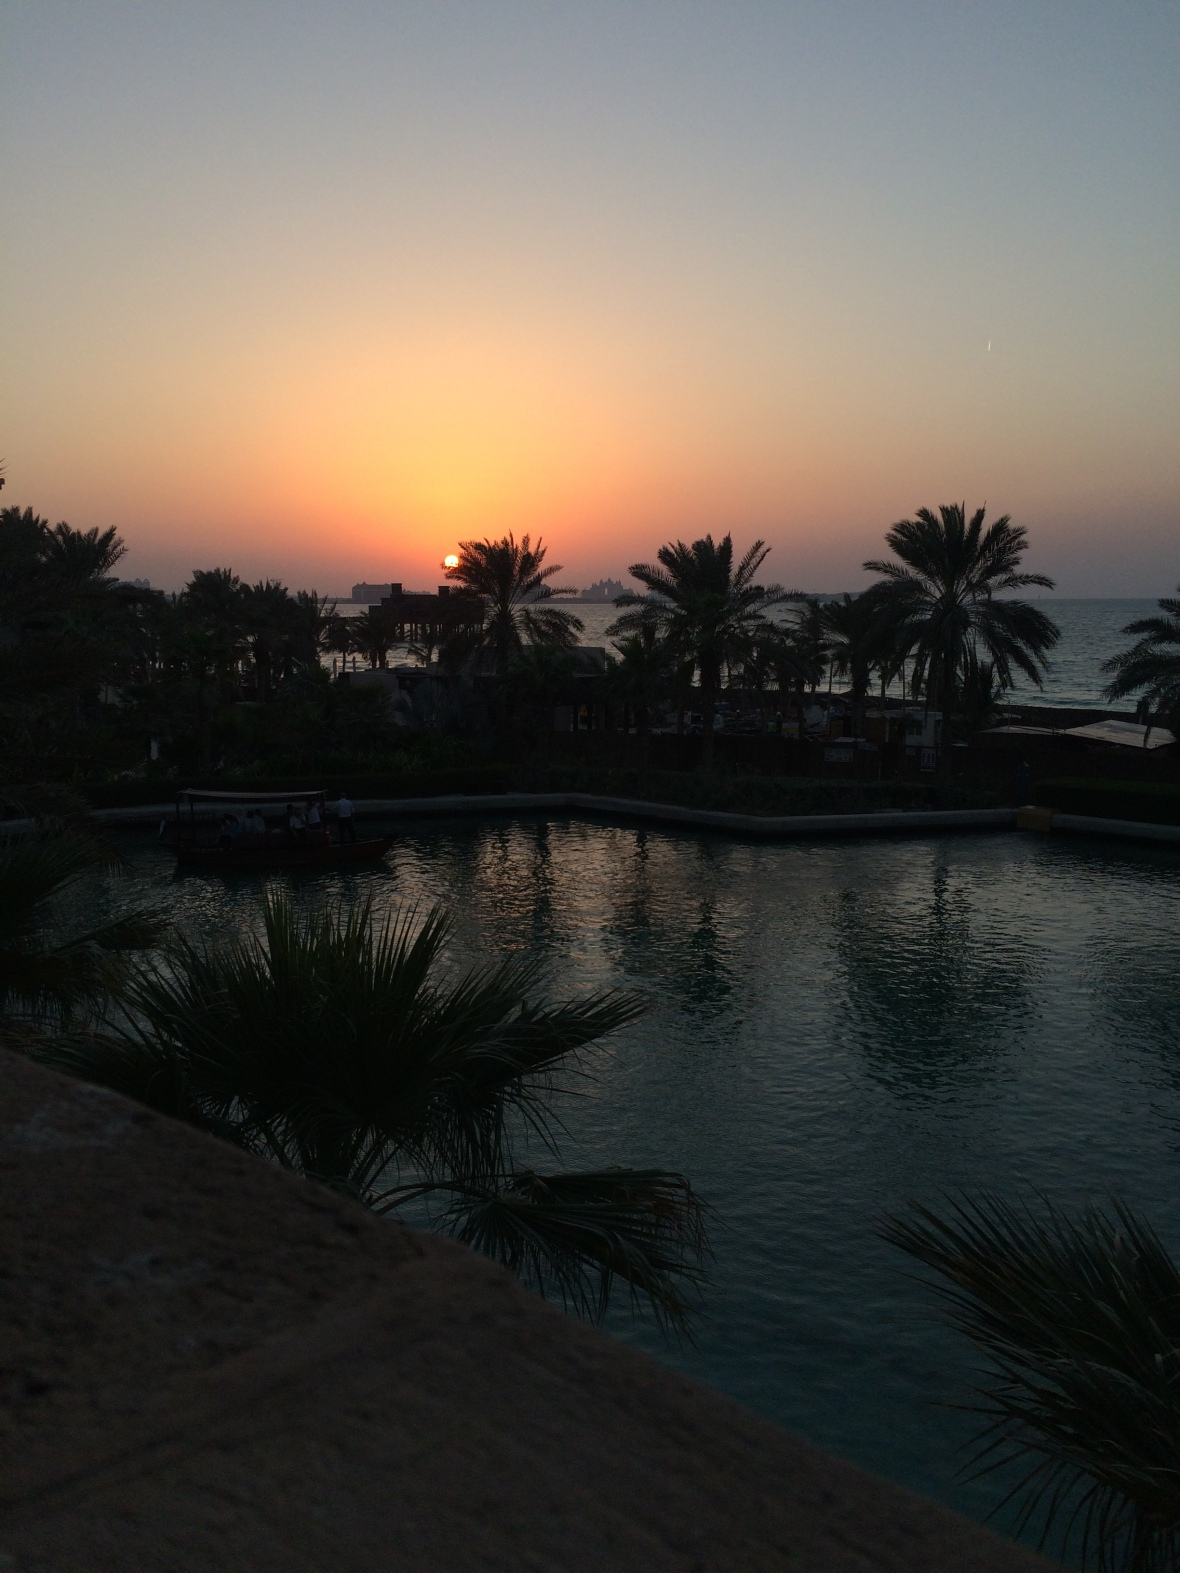 Sun Set, Bahri Bar, Madinat Jumeirah, Dubai, UAE